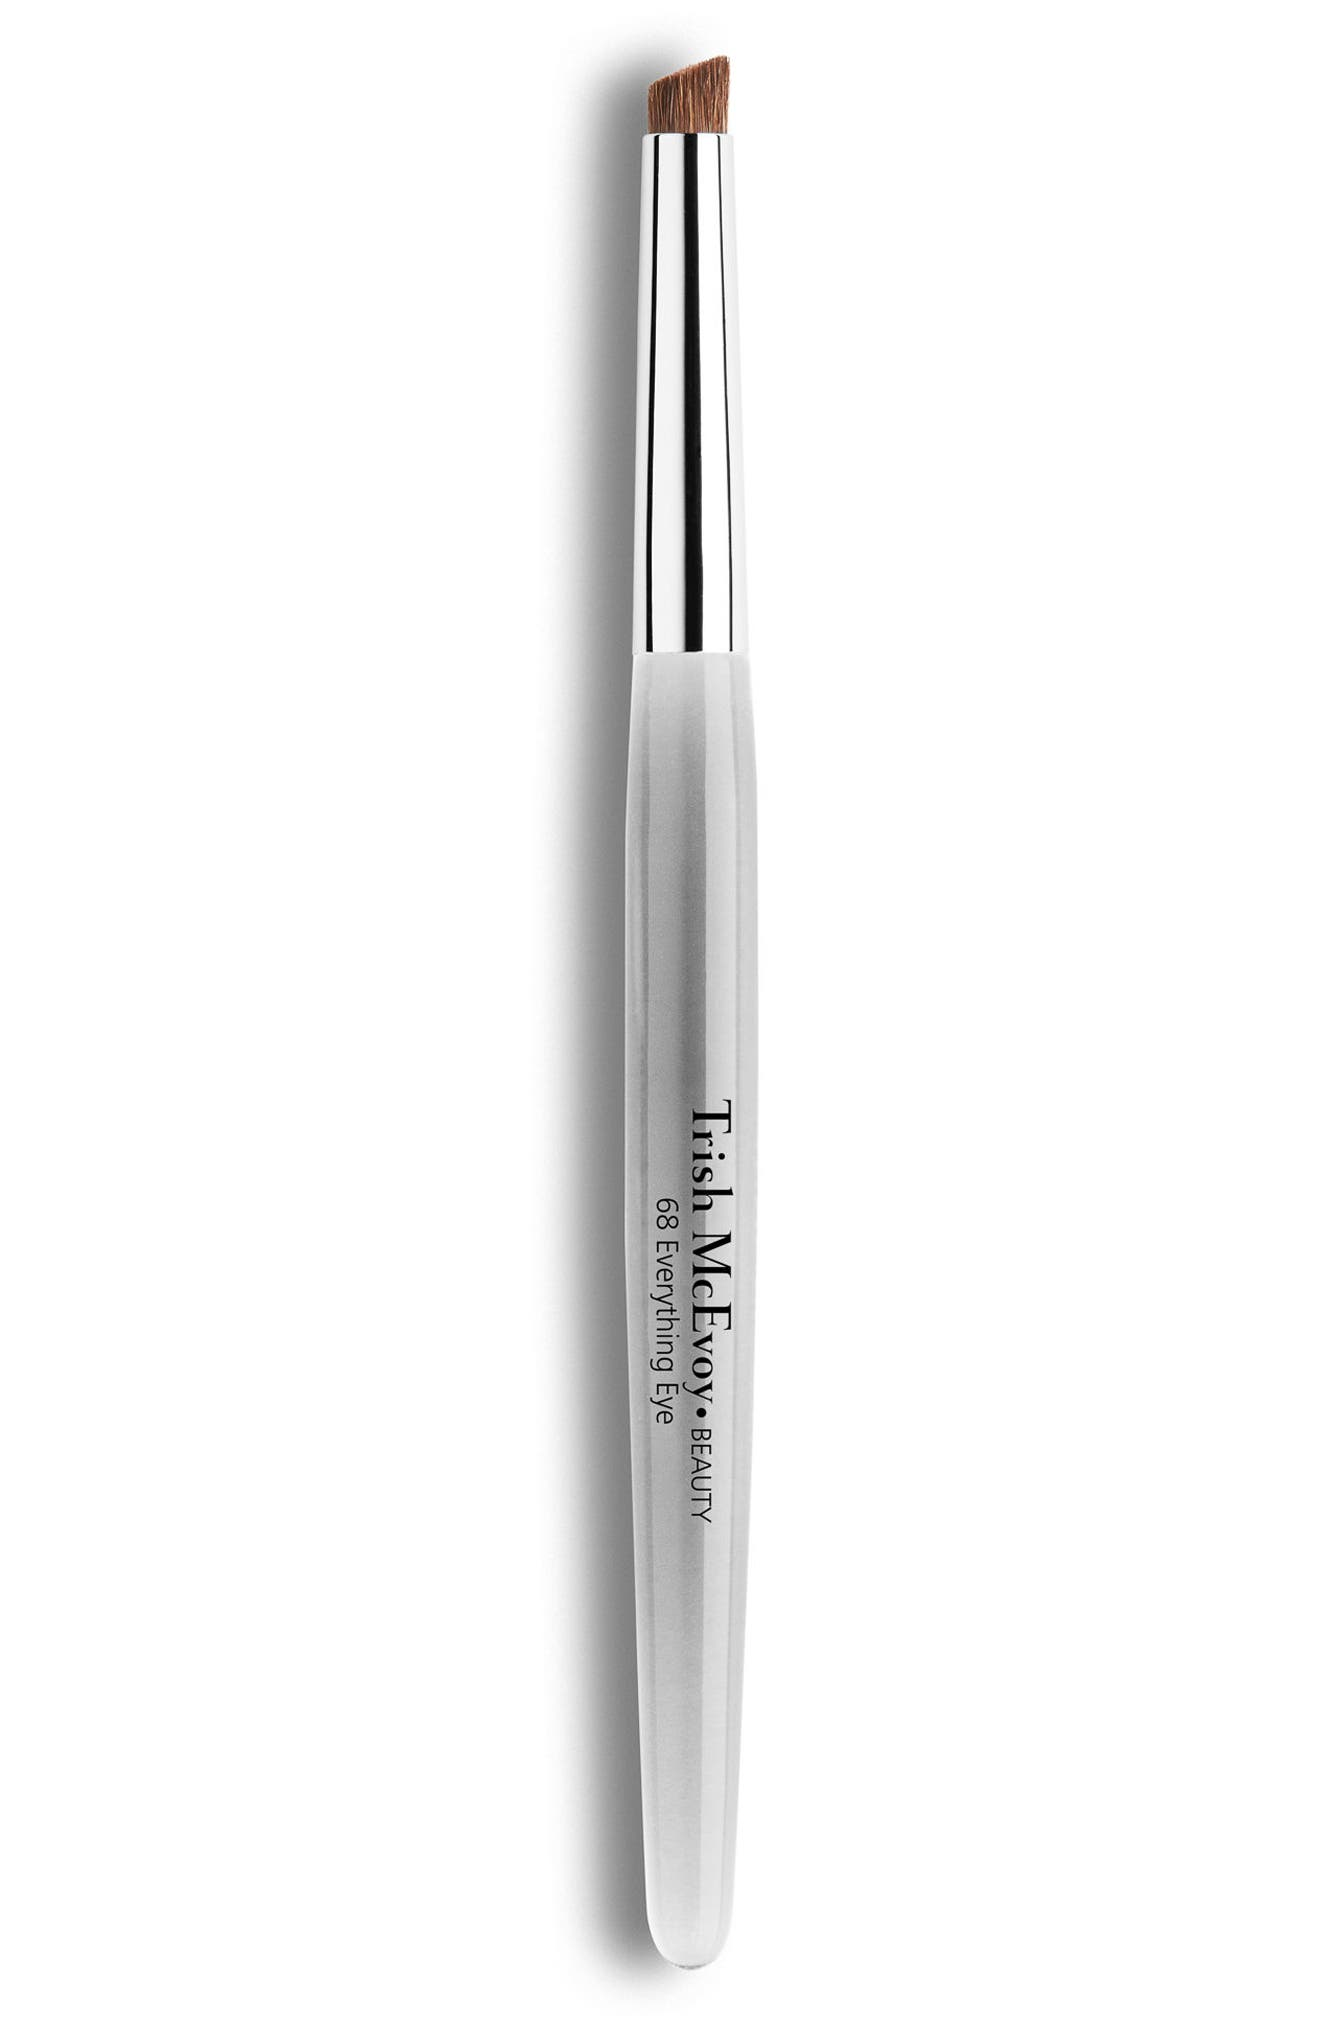 #68 Everything Eye Brush,                         Main,                         color, No Color